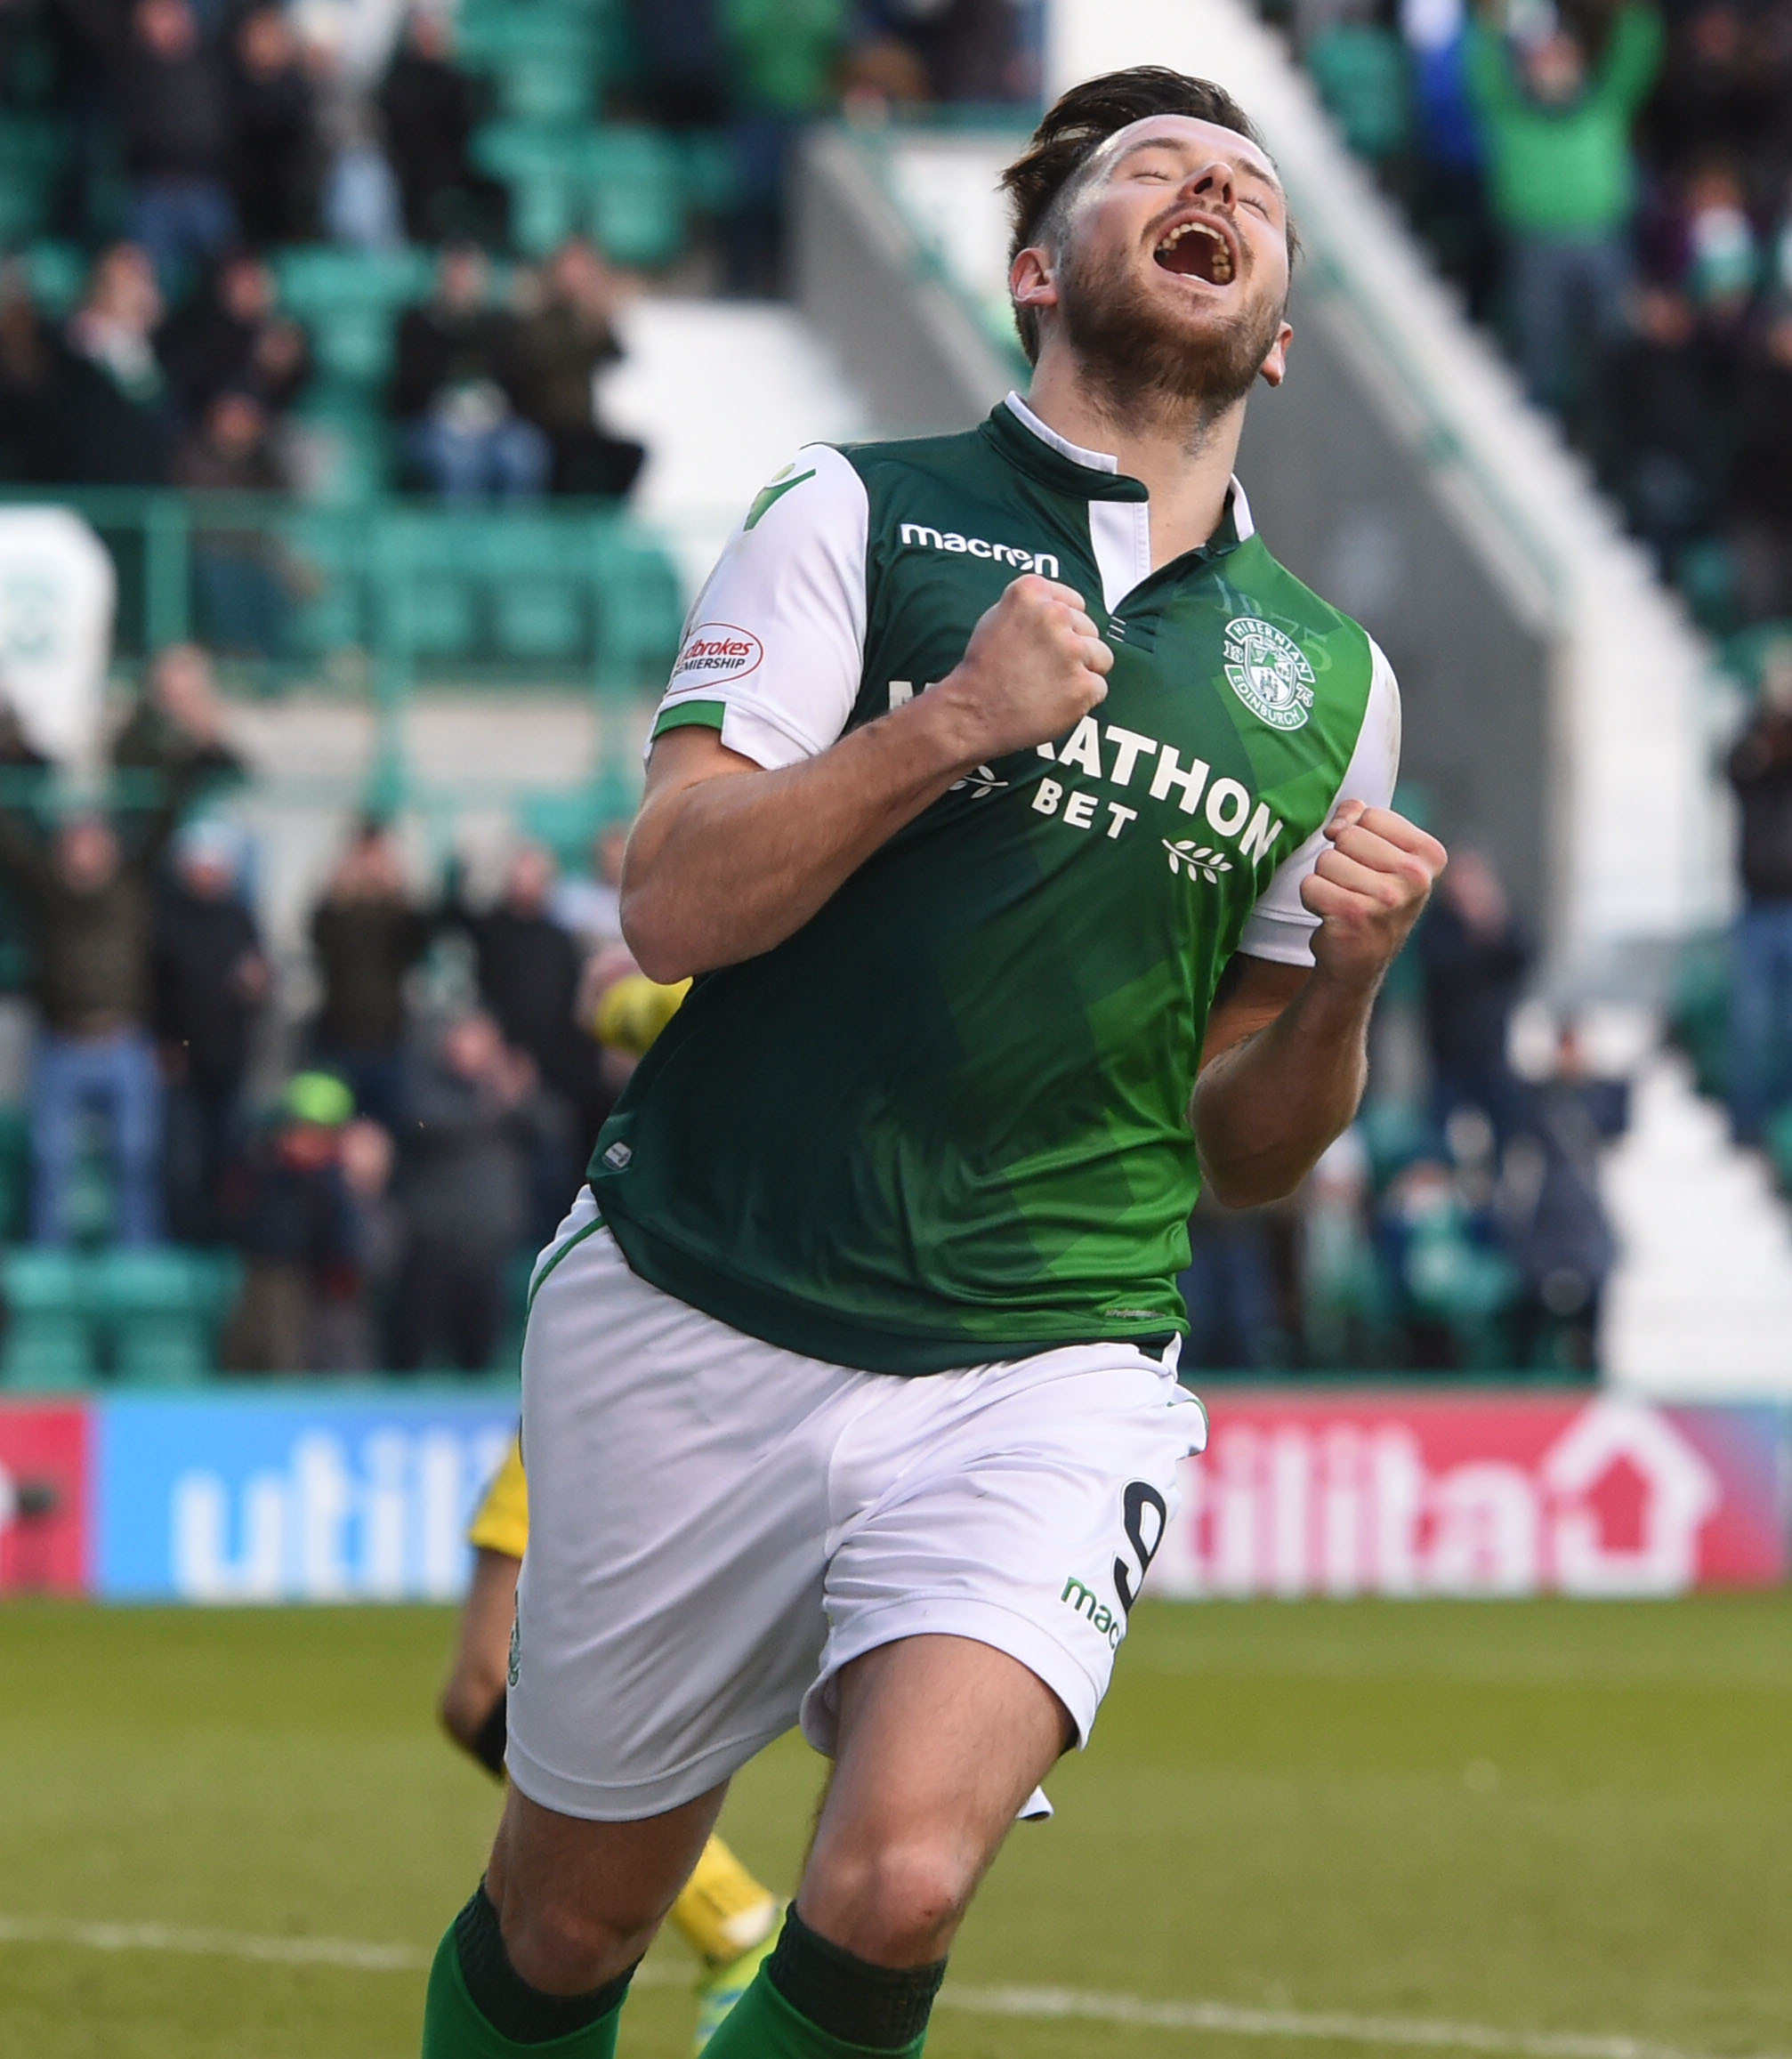 09/02/19 WILLIAM HILL SCOTTISH CUP 5TH ROUND.HIBERNIAN v RAITH ROVERS (3-1).EASTER ROAD- EDINBURGH.Hibernian's Marc McNulty celebrates his goal..